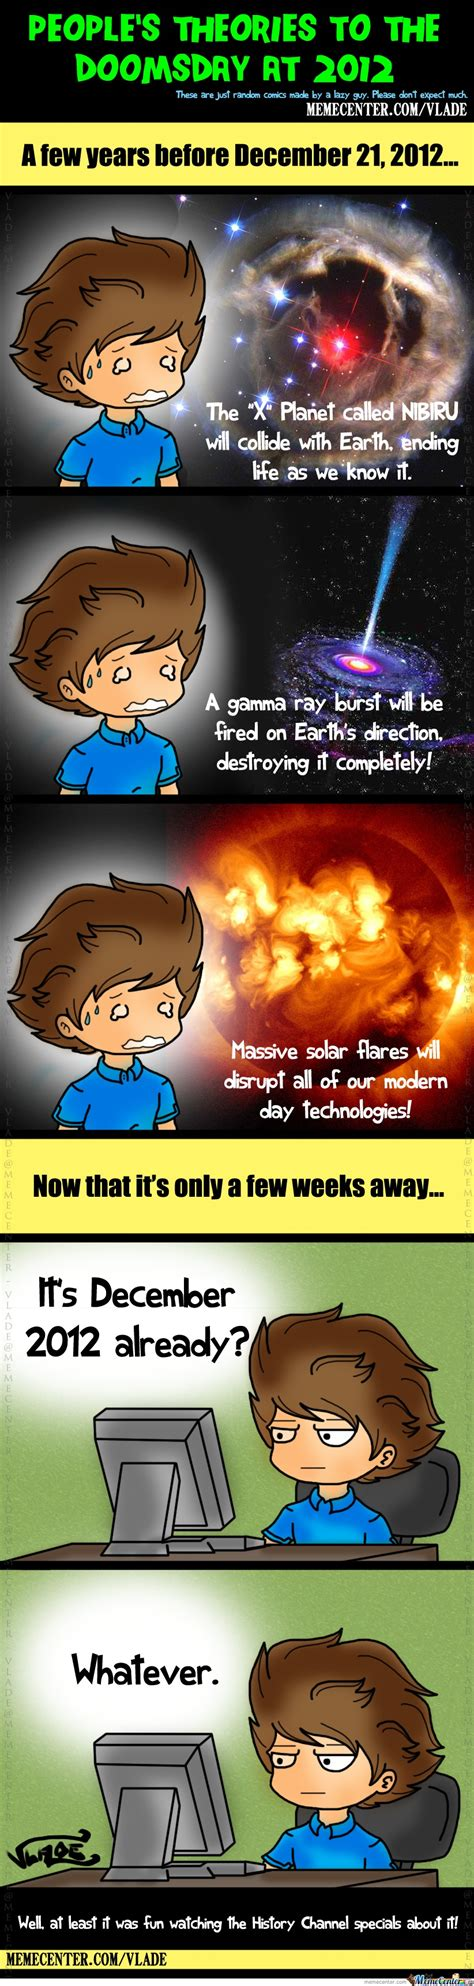 Doomsday Preppers Meme - doomsday 2012 by vlade meme center